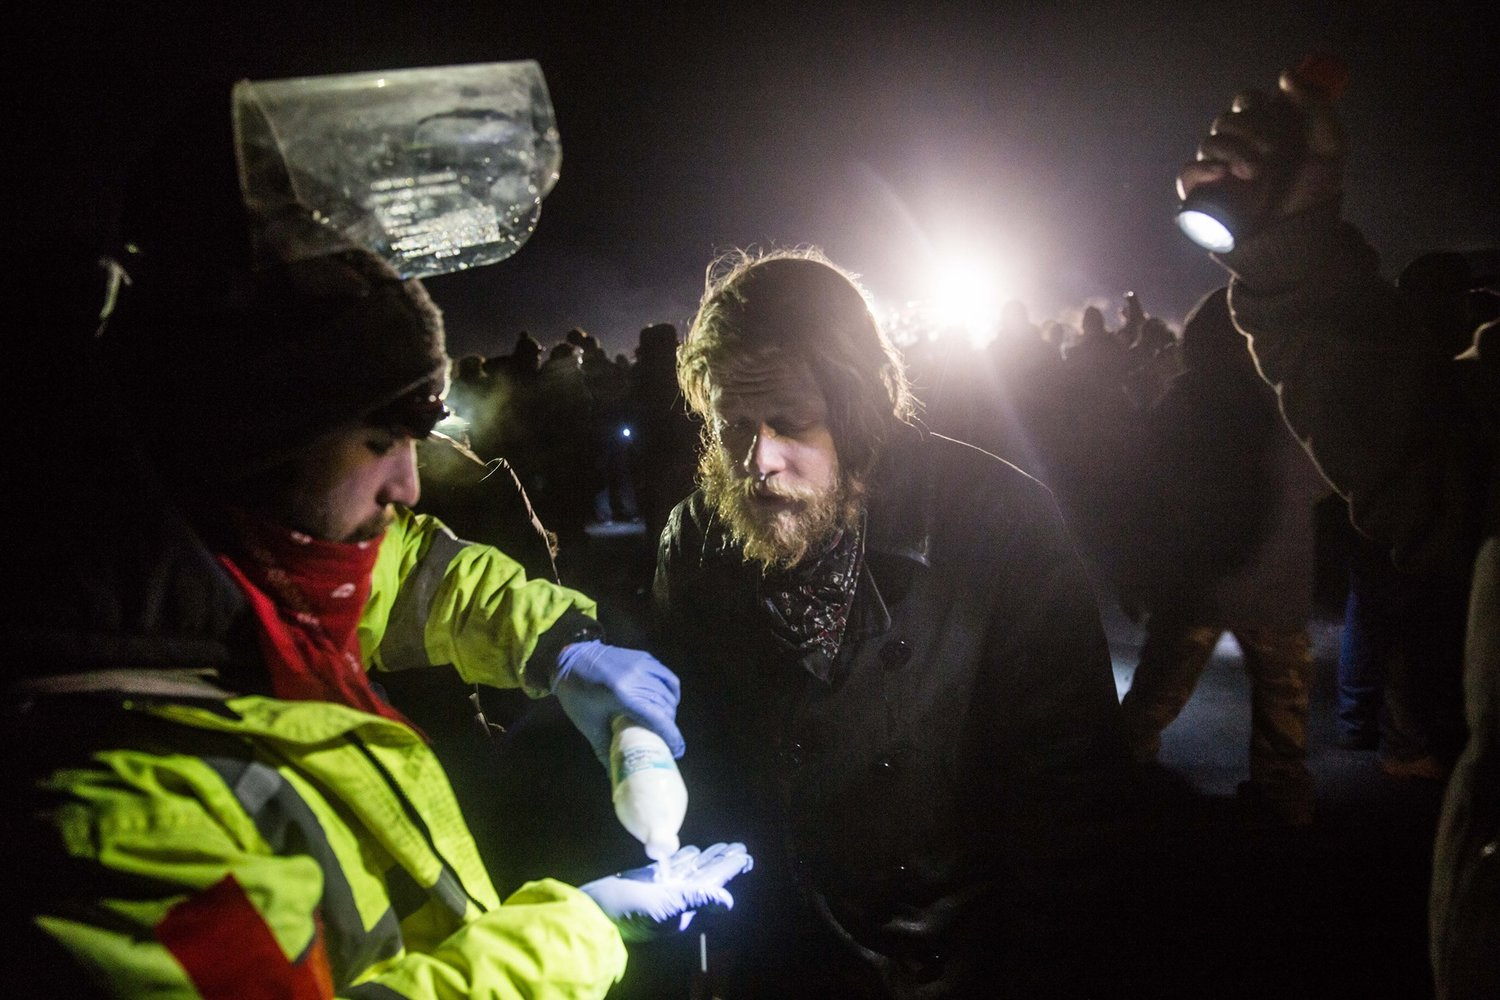 Dakota Access Pipeline continues legal push as frontline hit by assaults in North Dakota